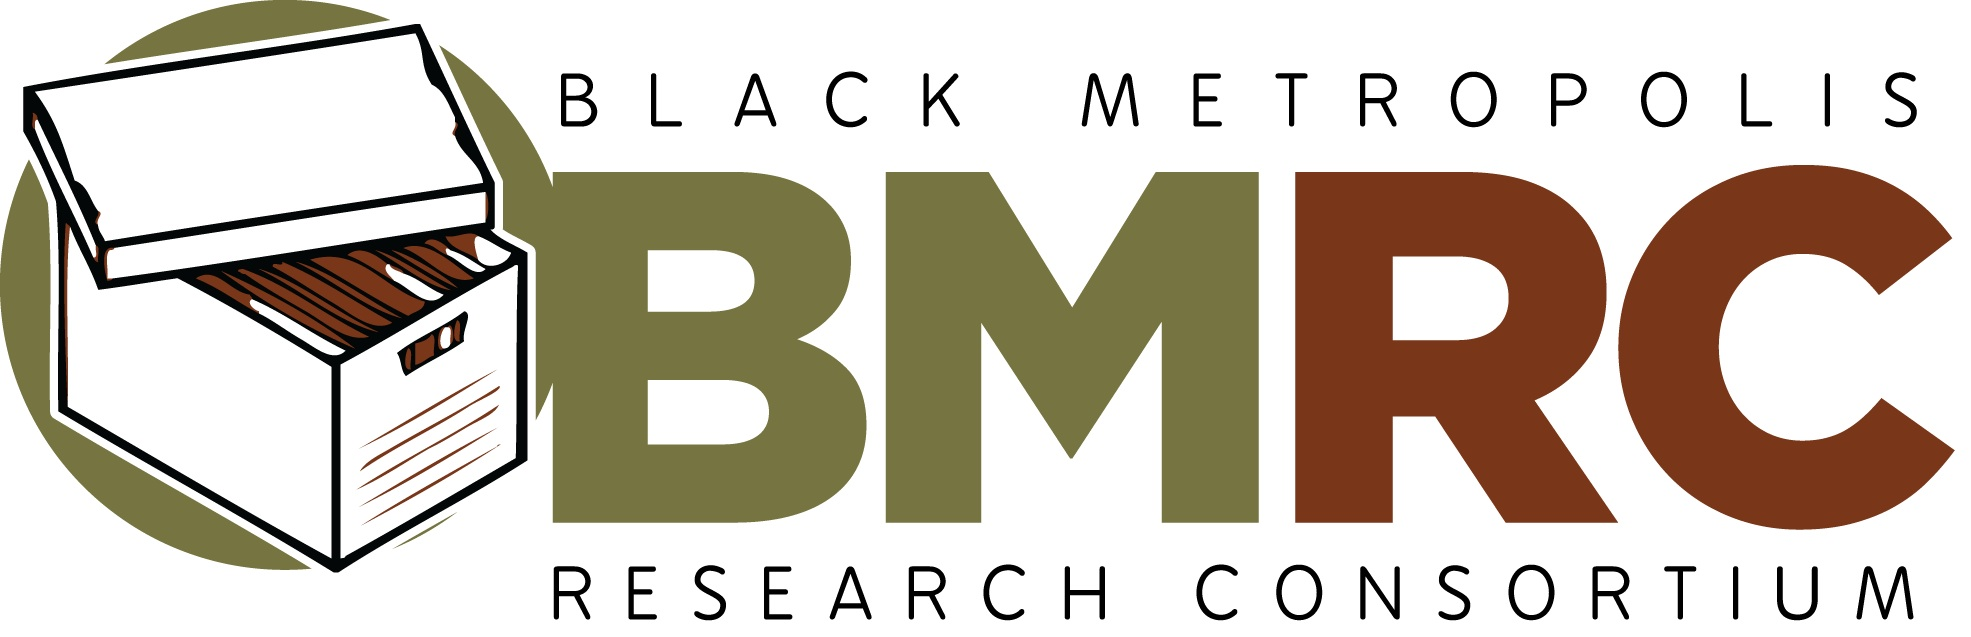 Black Metropolis Research Consortium Logo